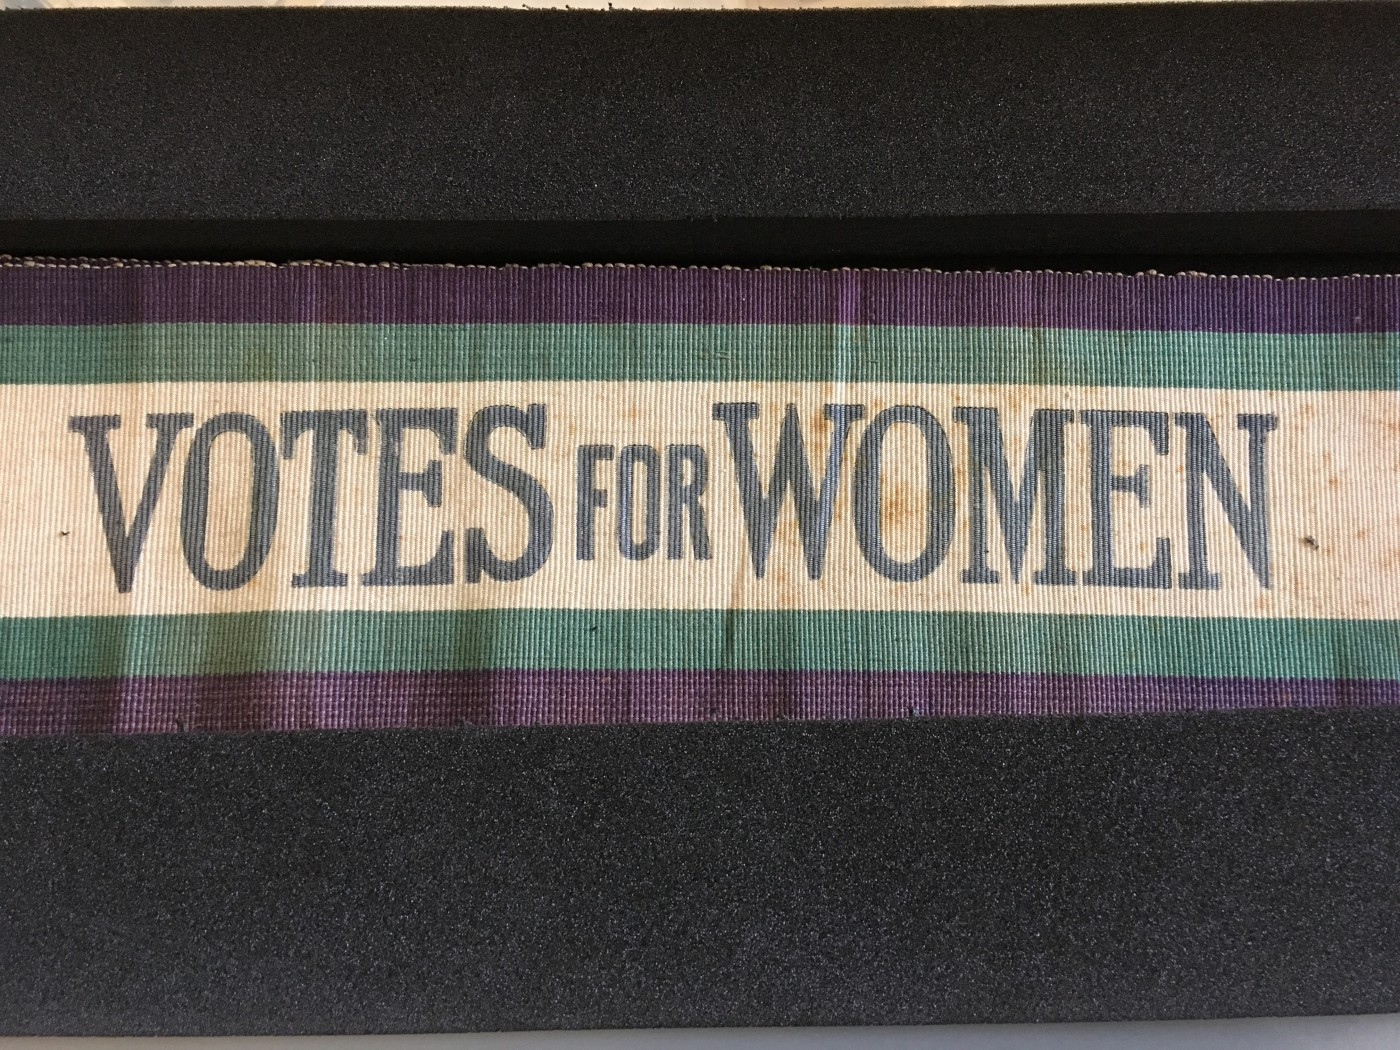 'Votes for Women's' sash from Brighton Museum & Art Gallery collections, taken by Author, 7th February 2018.